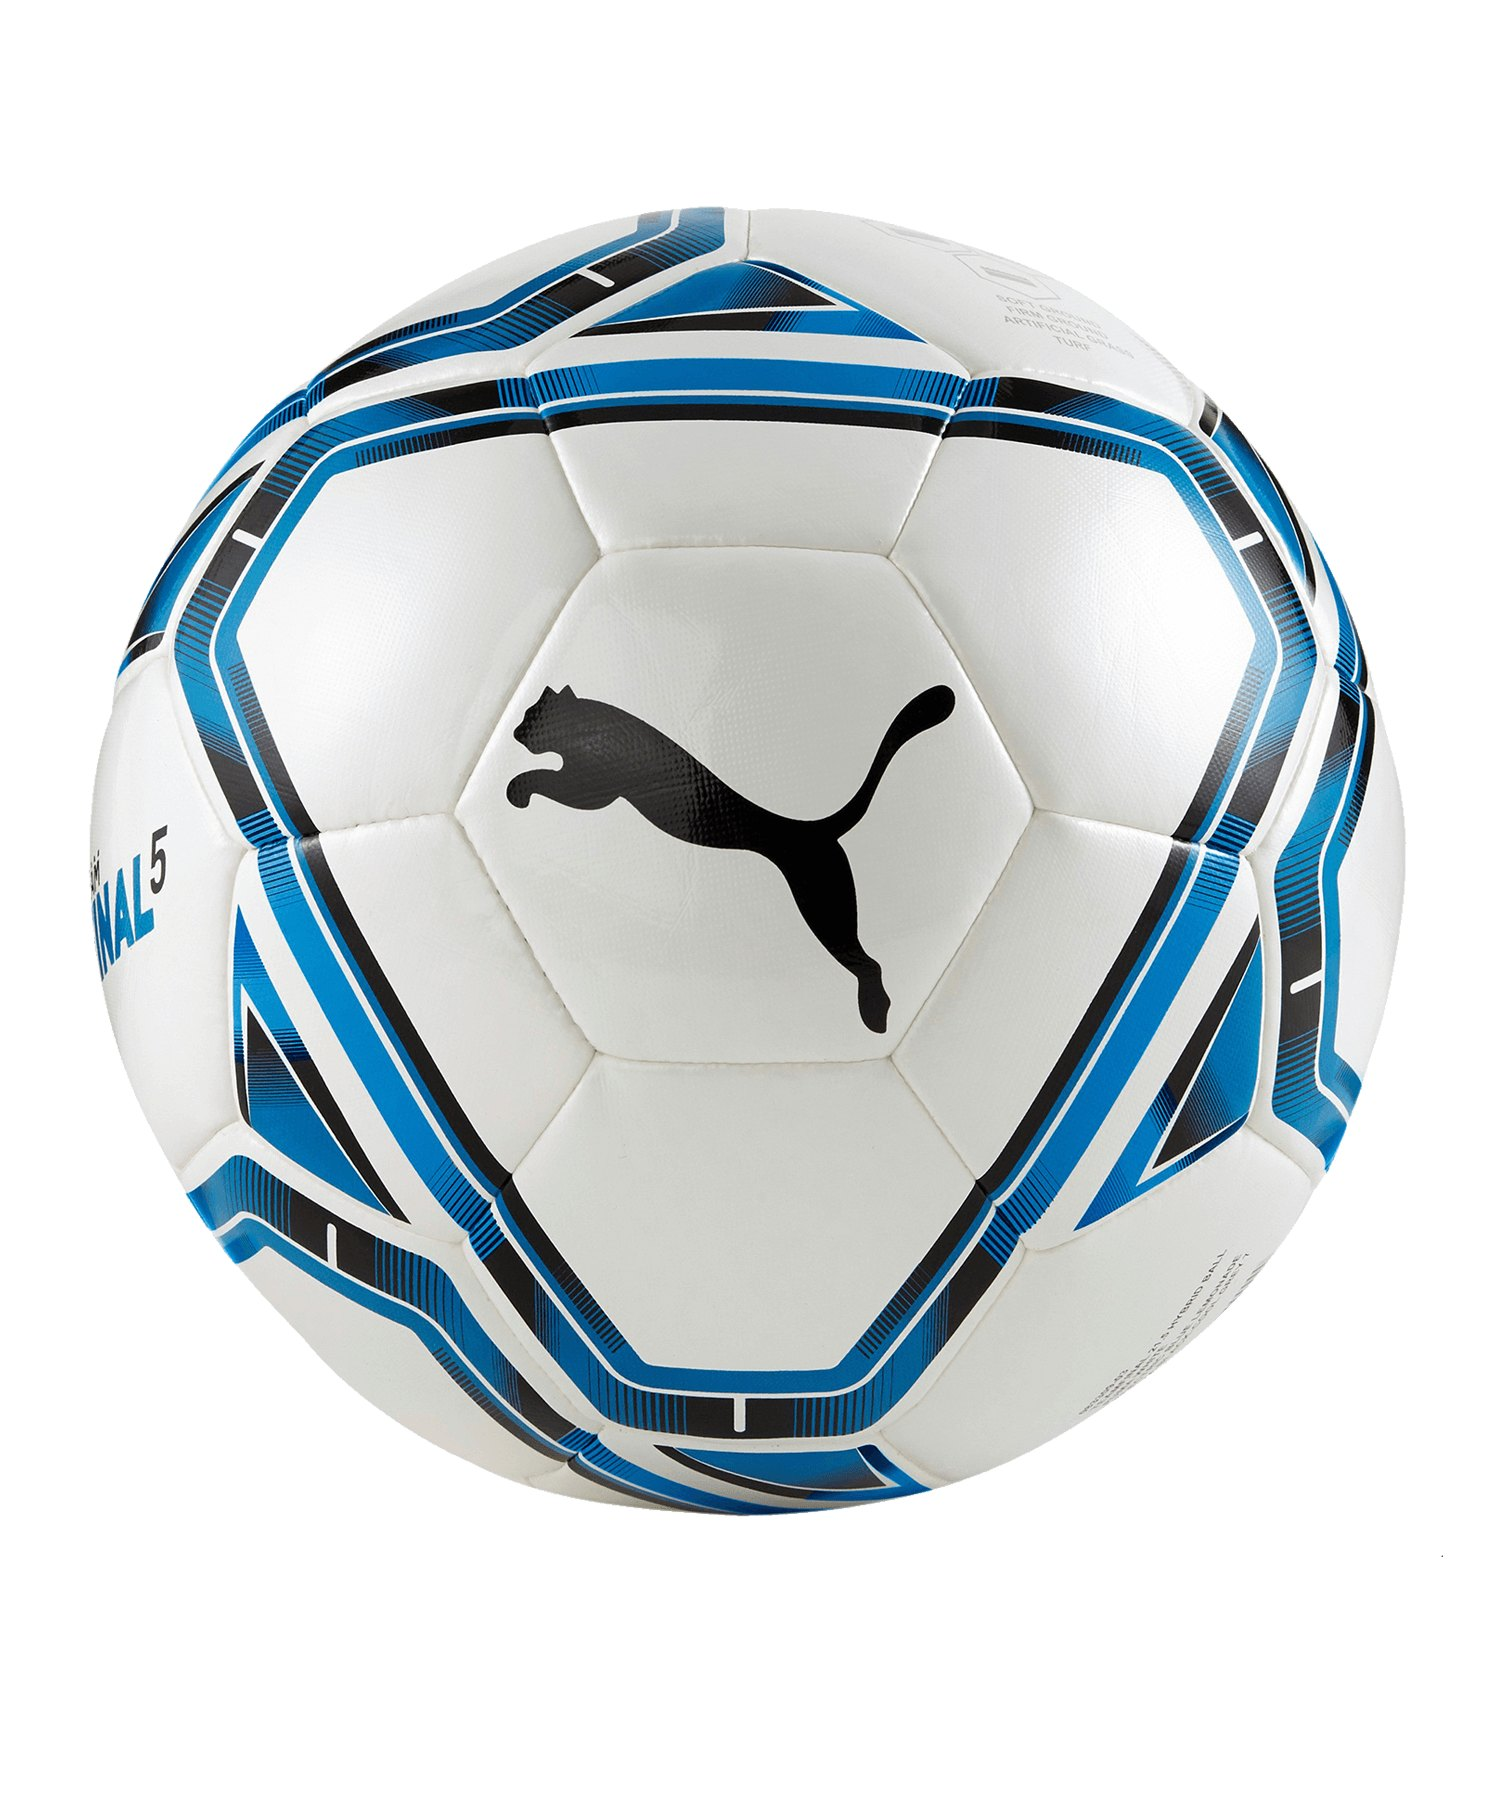 PUMA teamFINAL 21.5. Trainingsball F03 - weiss